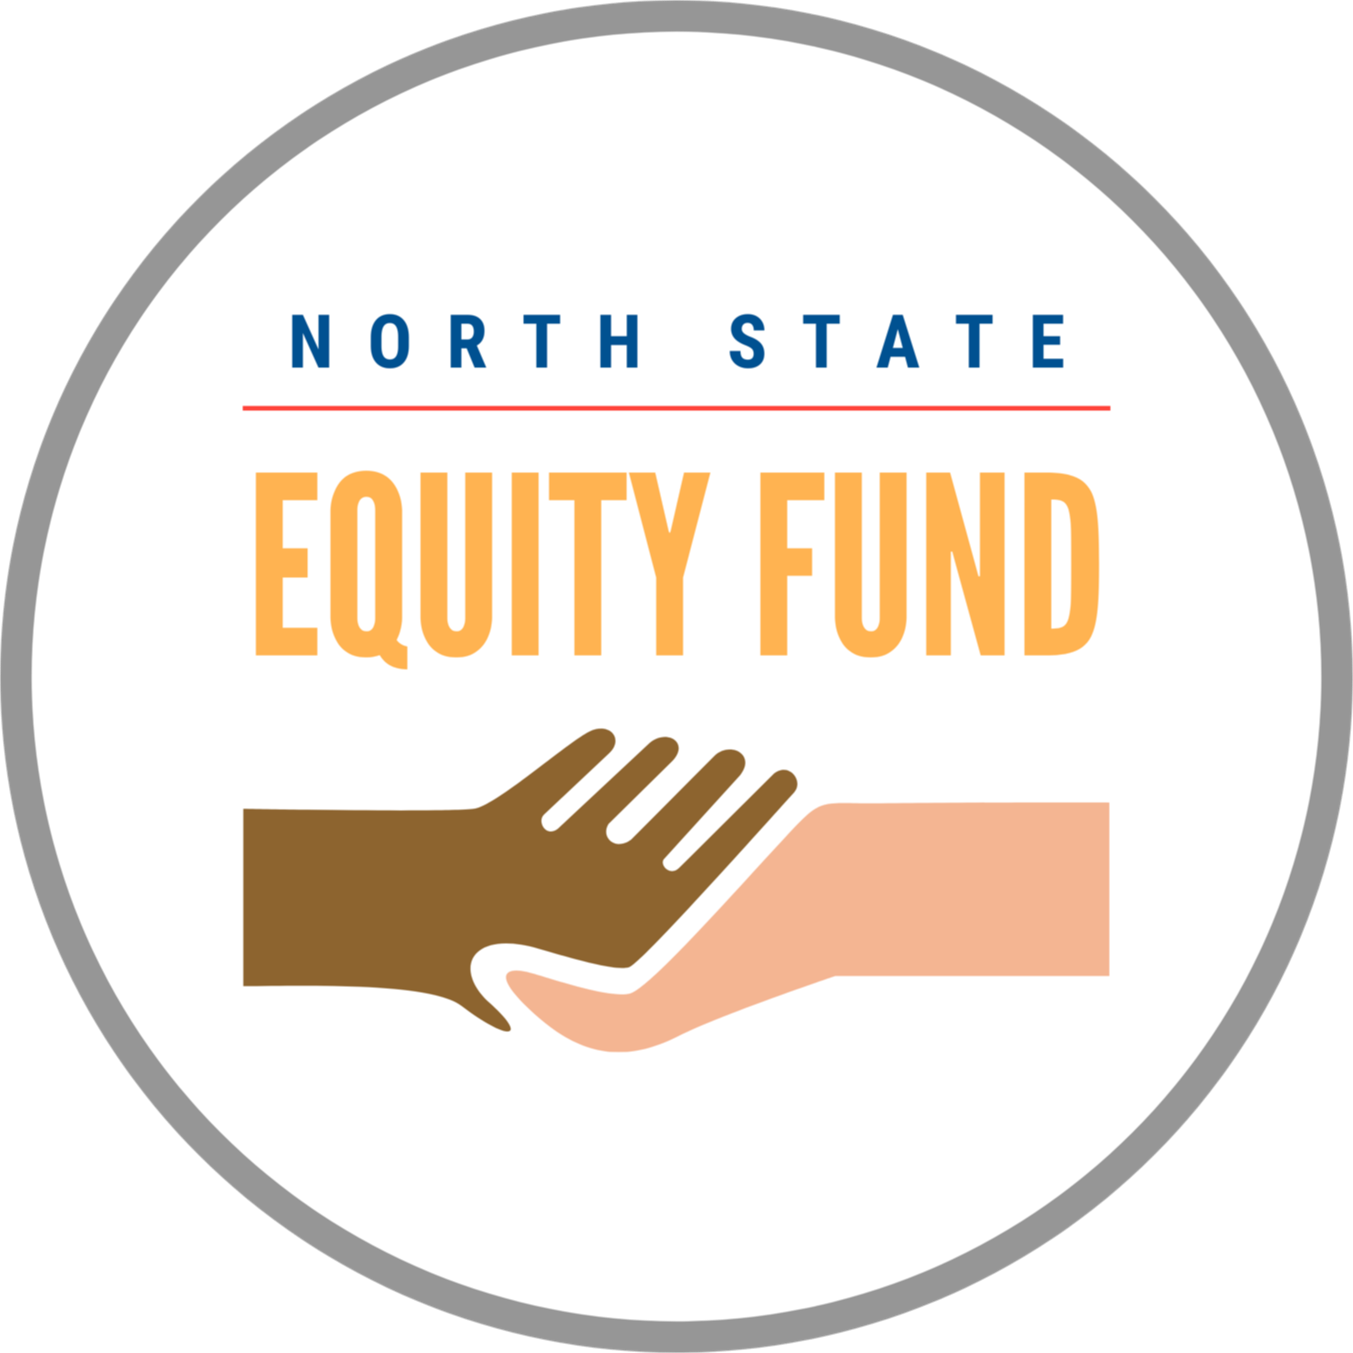 North State Equity Find